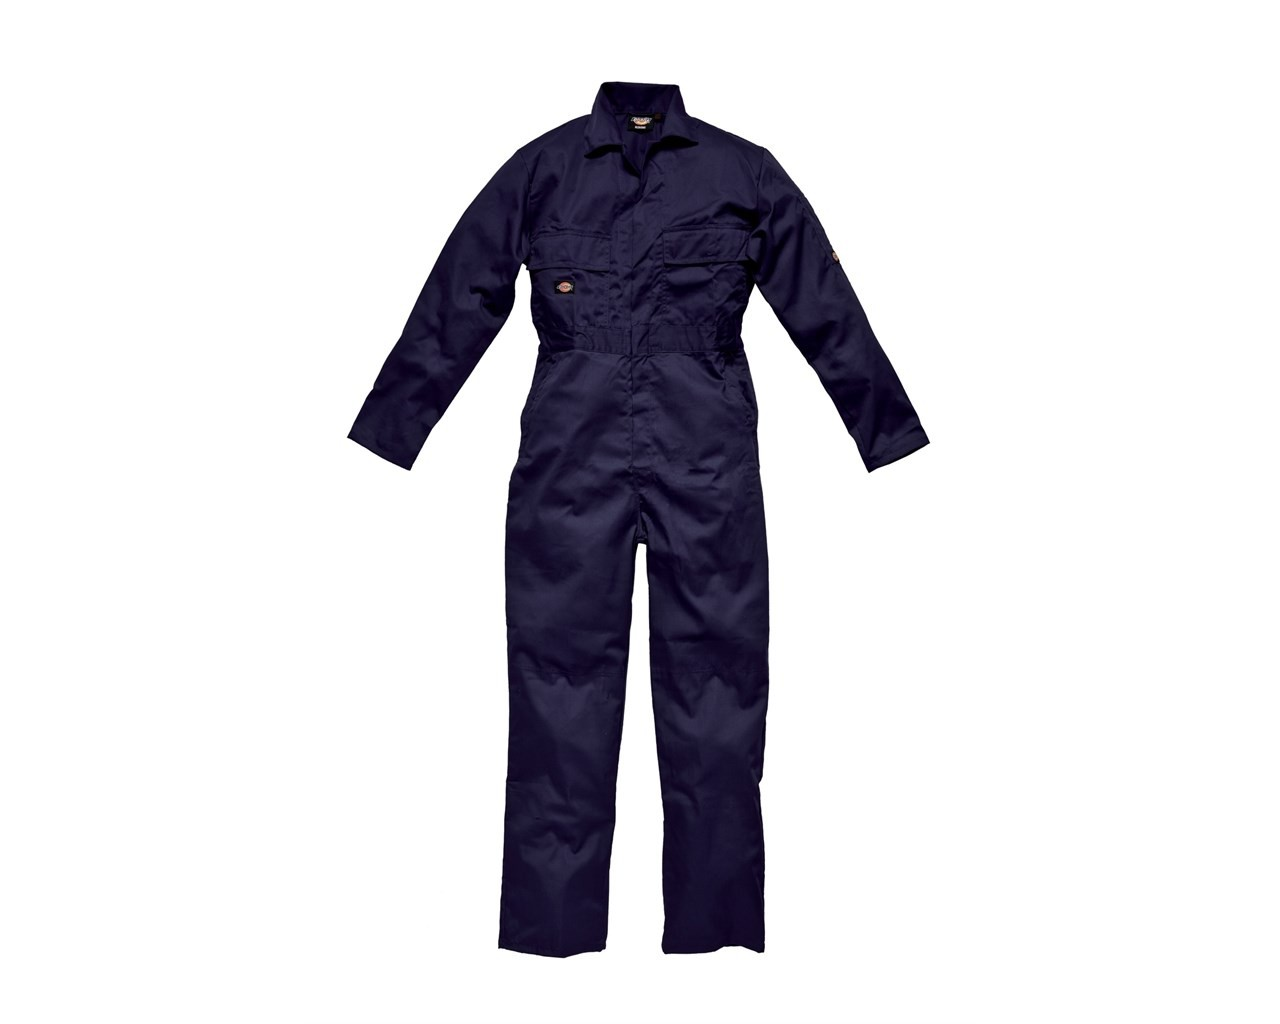 Dickies Redhawk Coverall - Navy Blue - 46 R